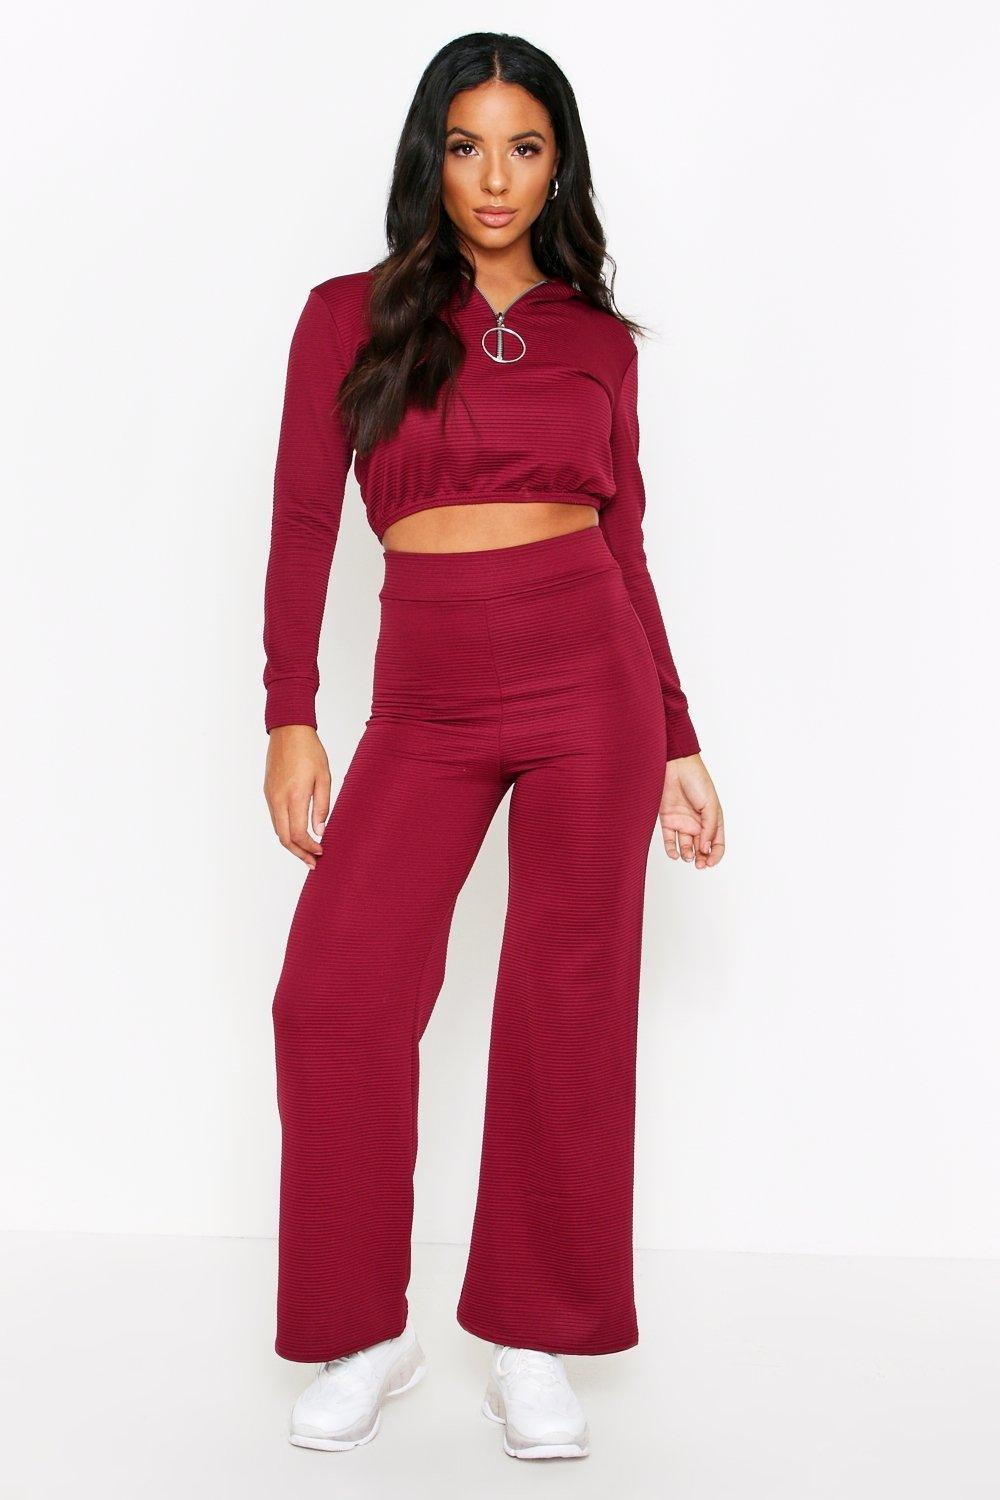 Womens Ribbed Zip Detail Wide Leg Lounge Set - Red - M/L, Red